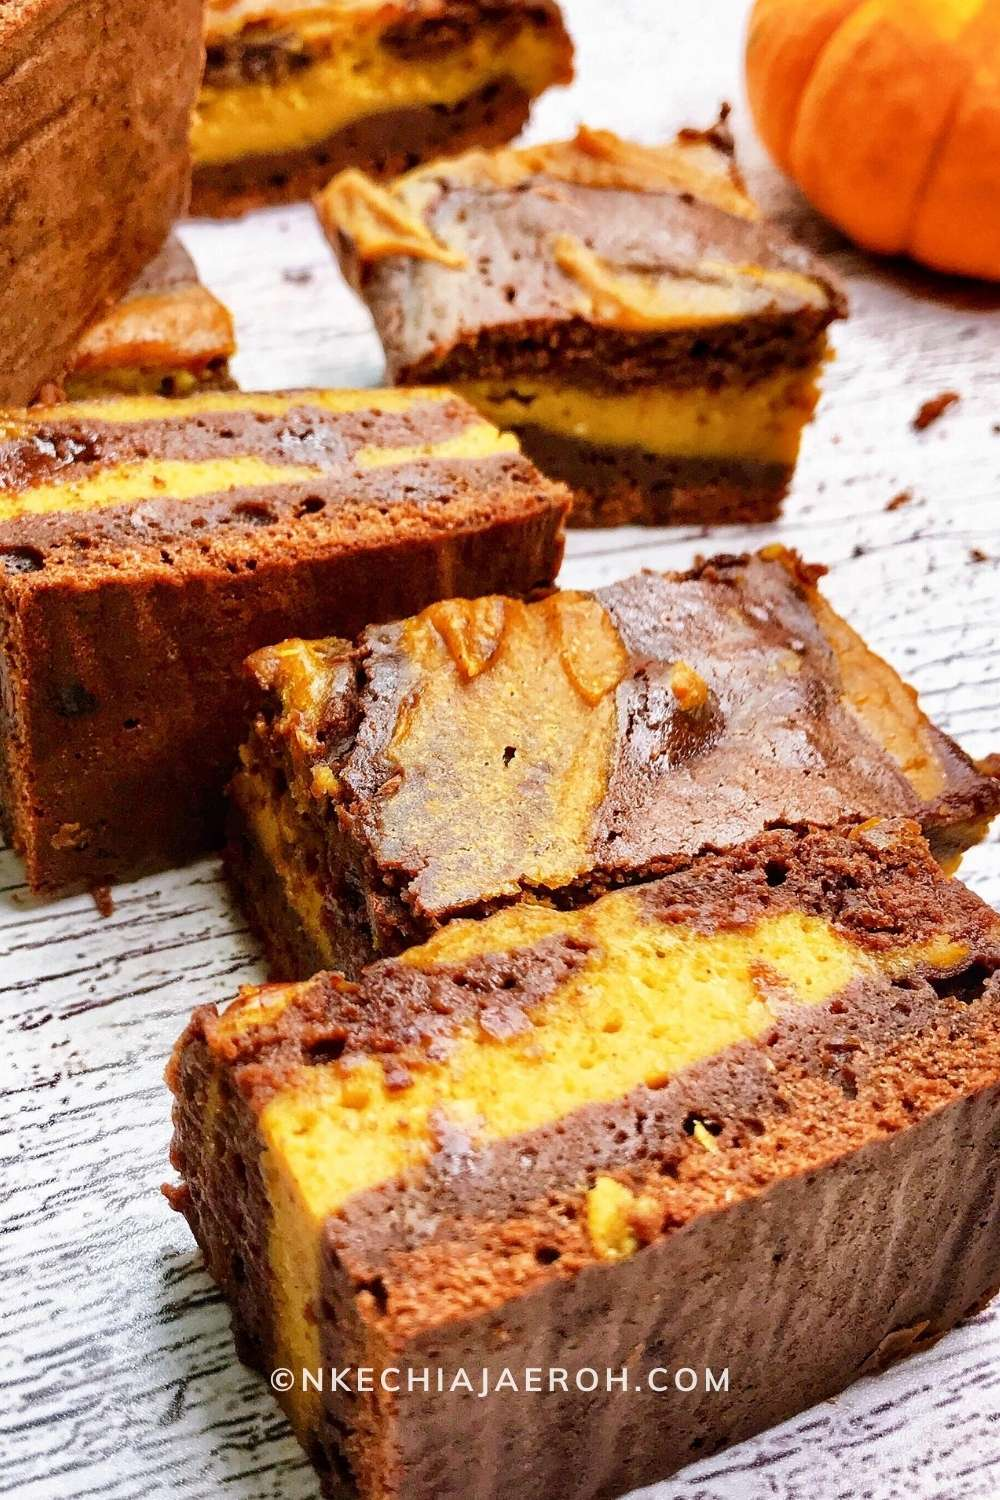 Healthy and delicious Pumpkin Brownies Recipe. I will say that making these yummy fudgy pumpkin brownies was terrific. Fortunately, it was so worth the time! Please see the recipe card below for the exact quantity. You are welcome to have a piece or two or three. #Pumpkinseason #fall #pumpkinbrownies